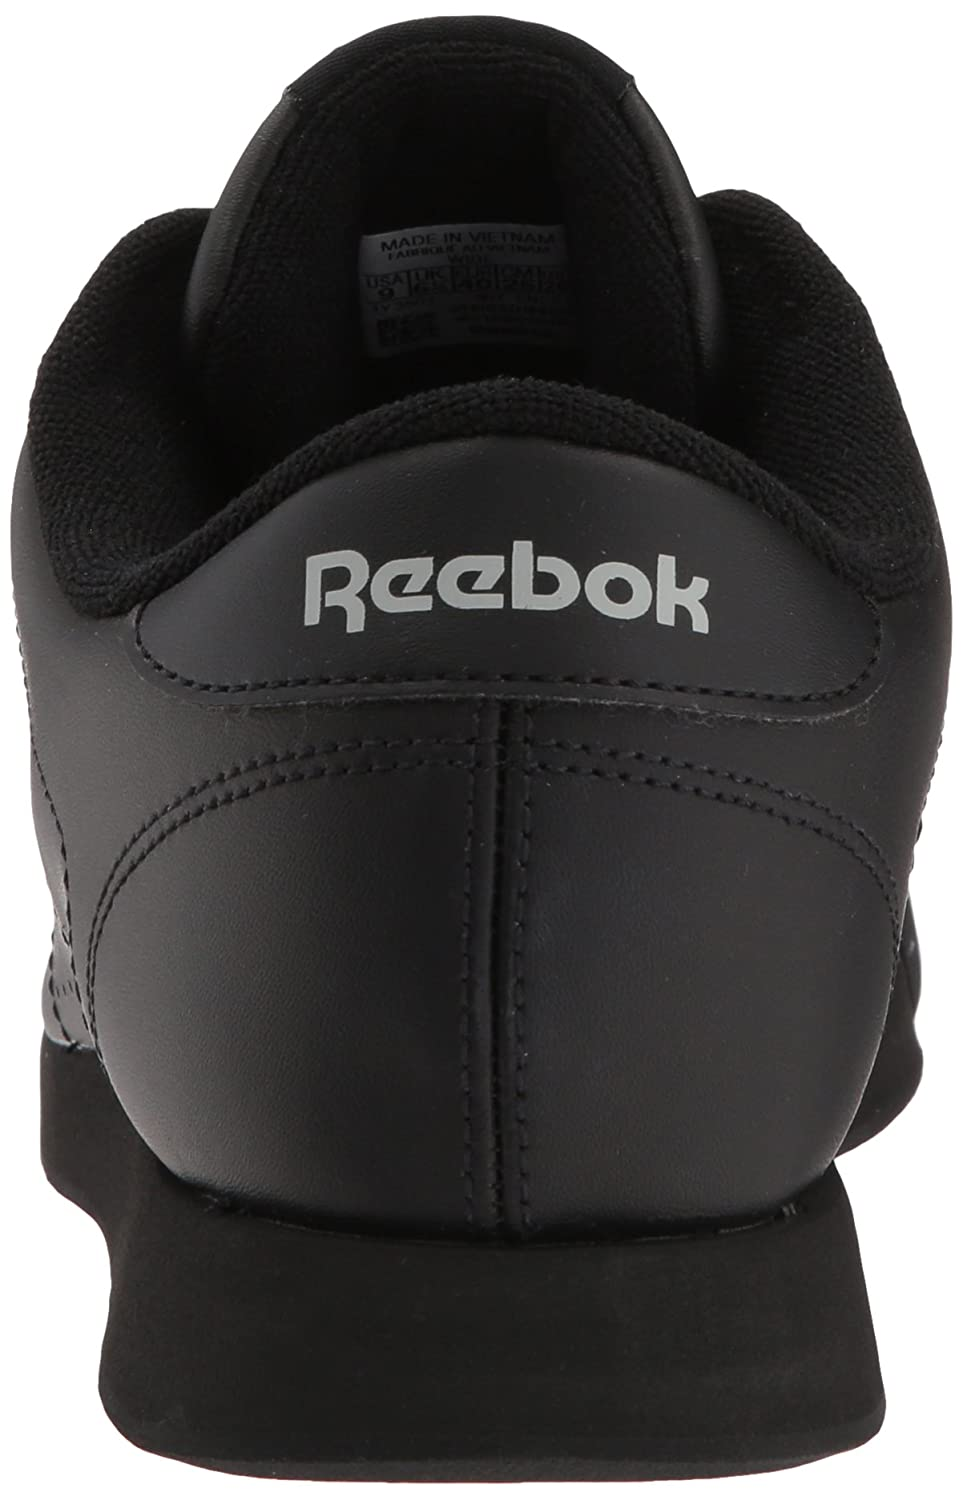 Reebok Women's Princess Walking Shoe B077Z99VMT 6 B(M) US|Black